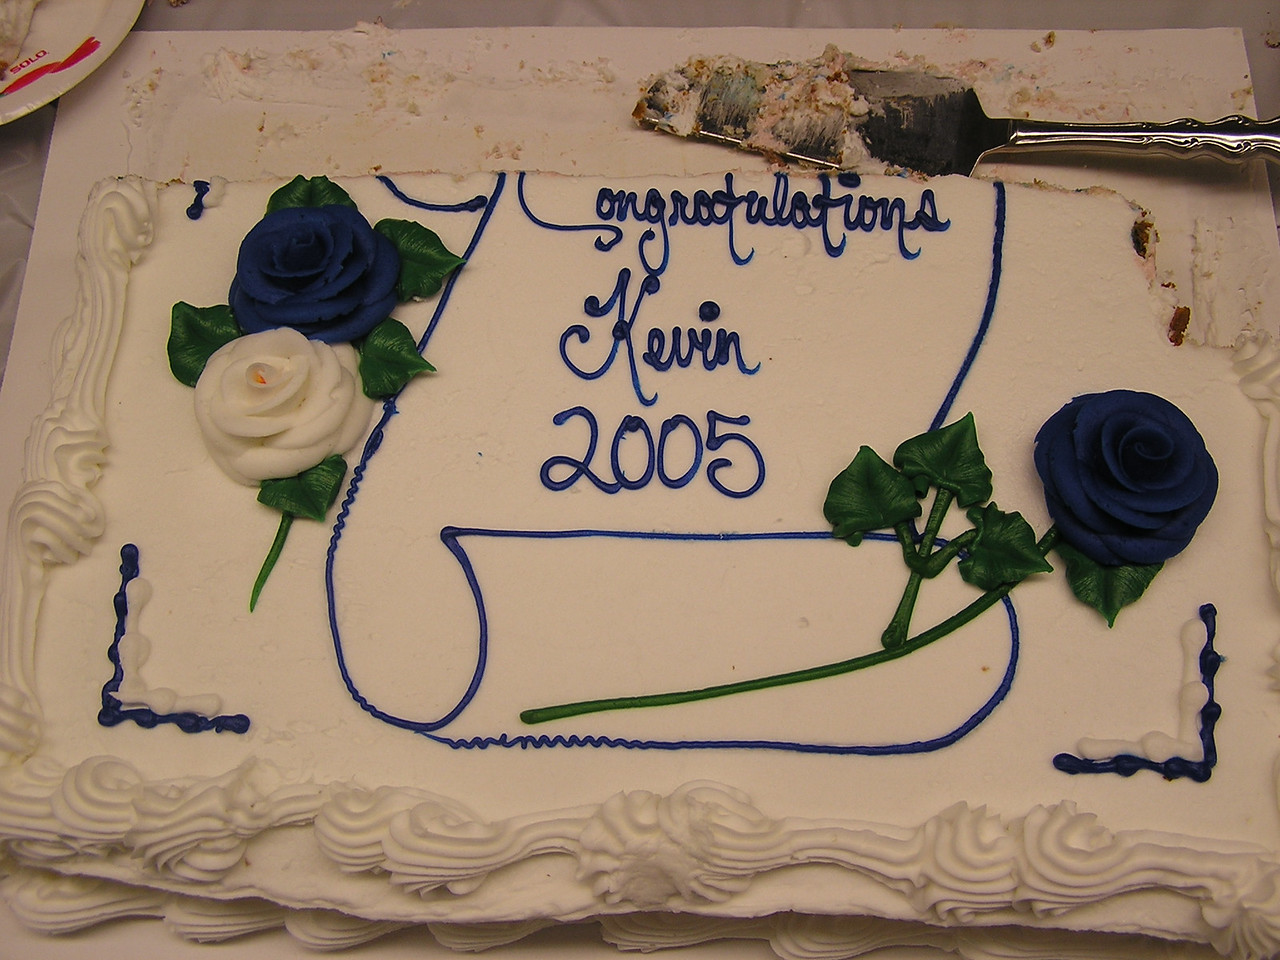 At the graduation pary, Kevin's cake.